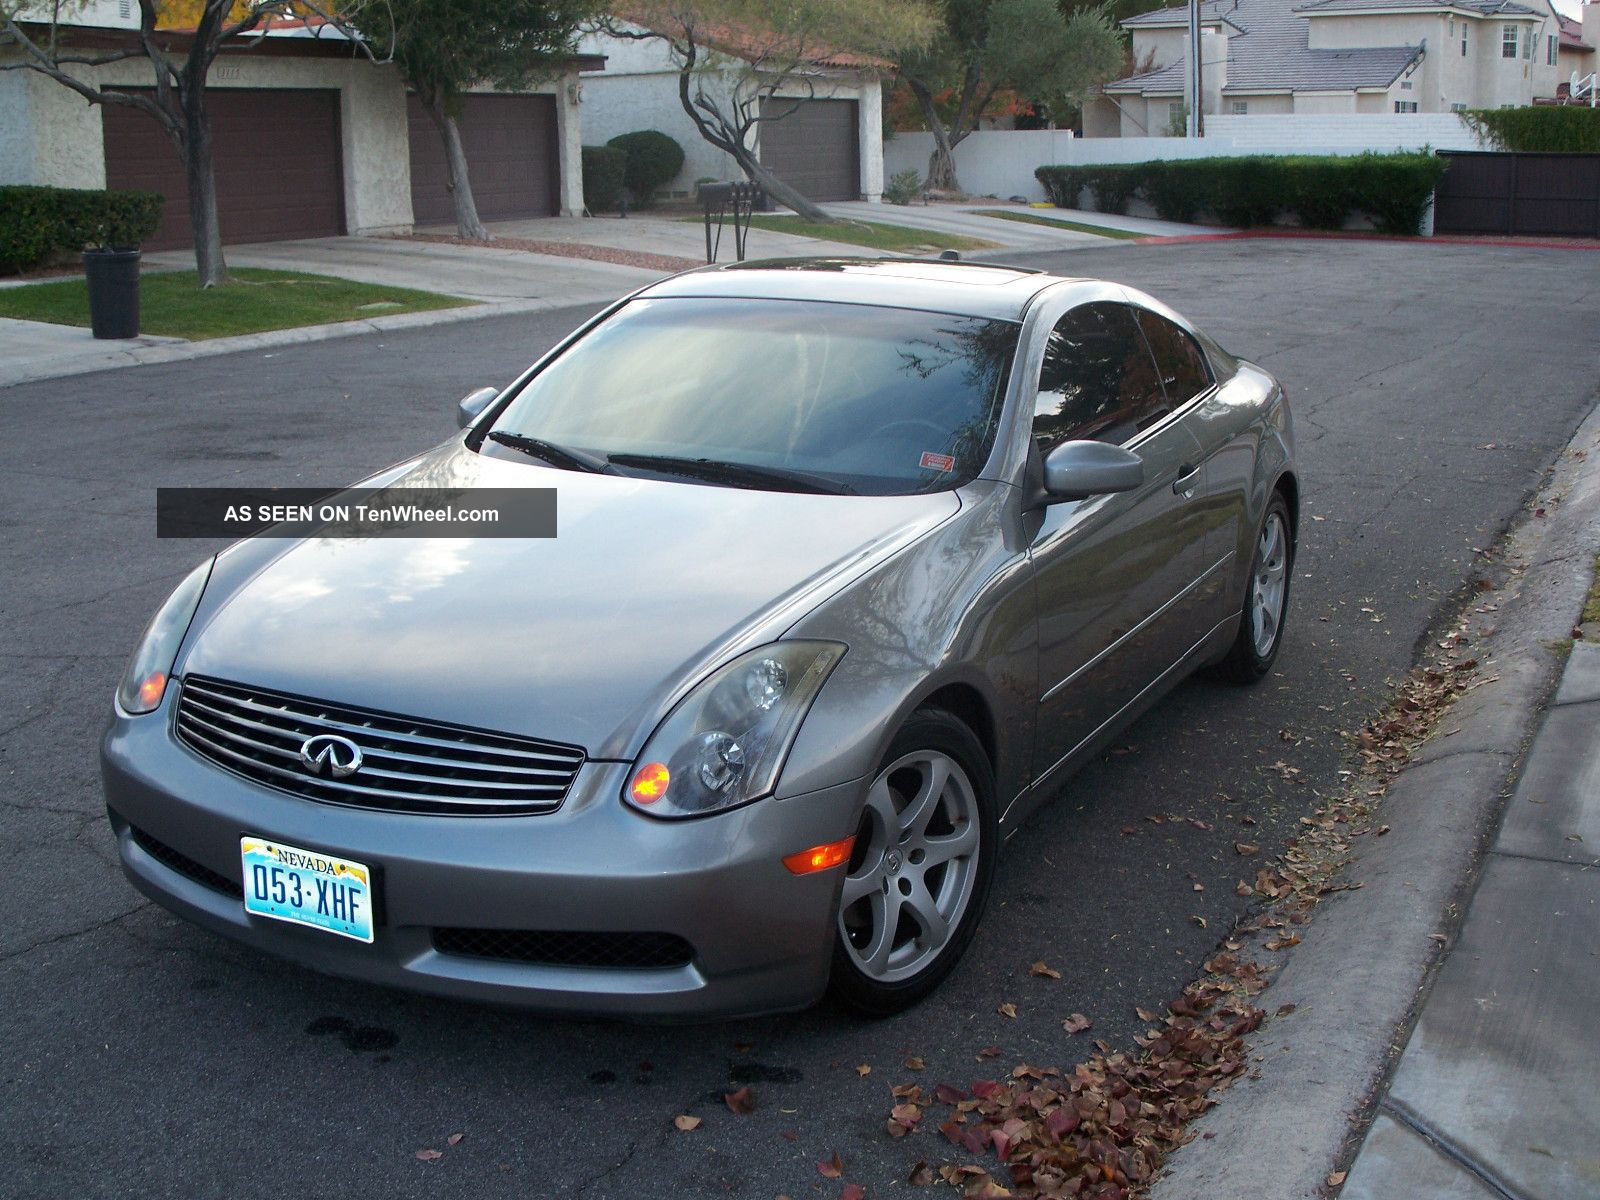 2004 infiniti g35 silver and black coupe 2 door 3 5l. Black Bedroom Furniture Sets. Home Design Ideas